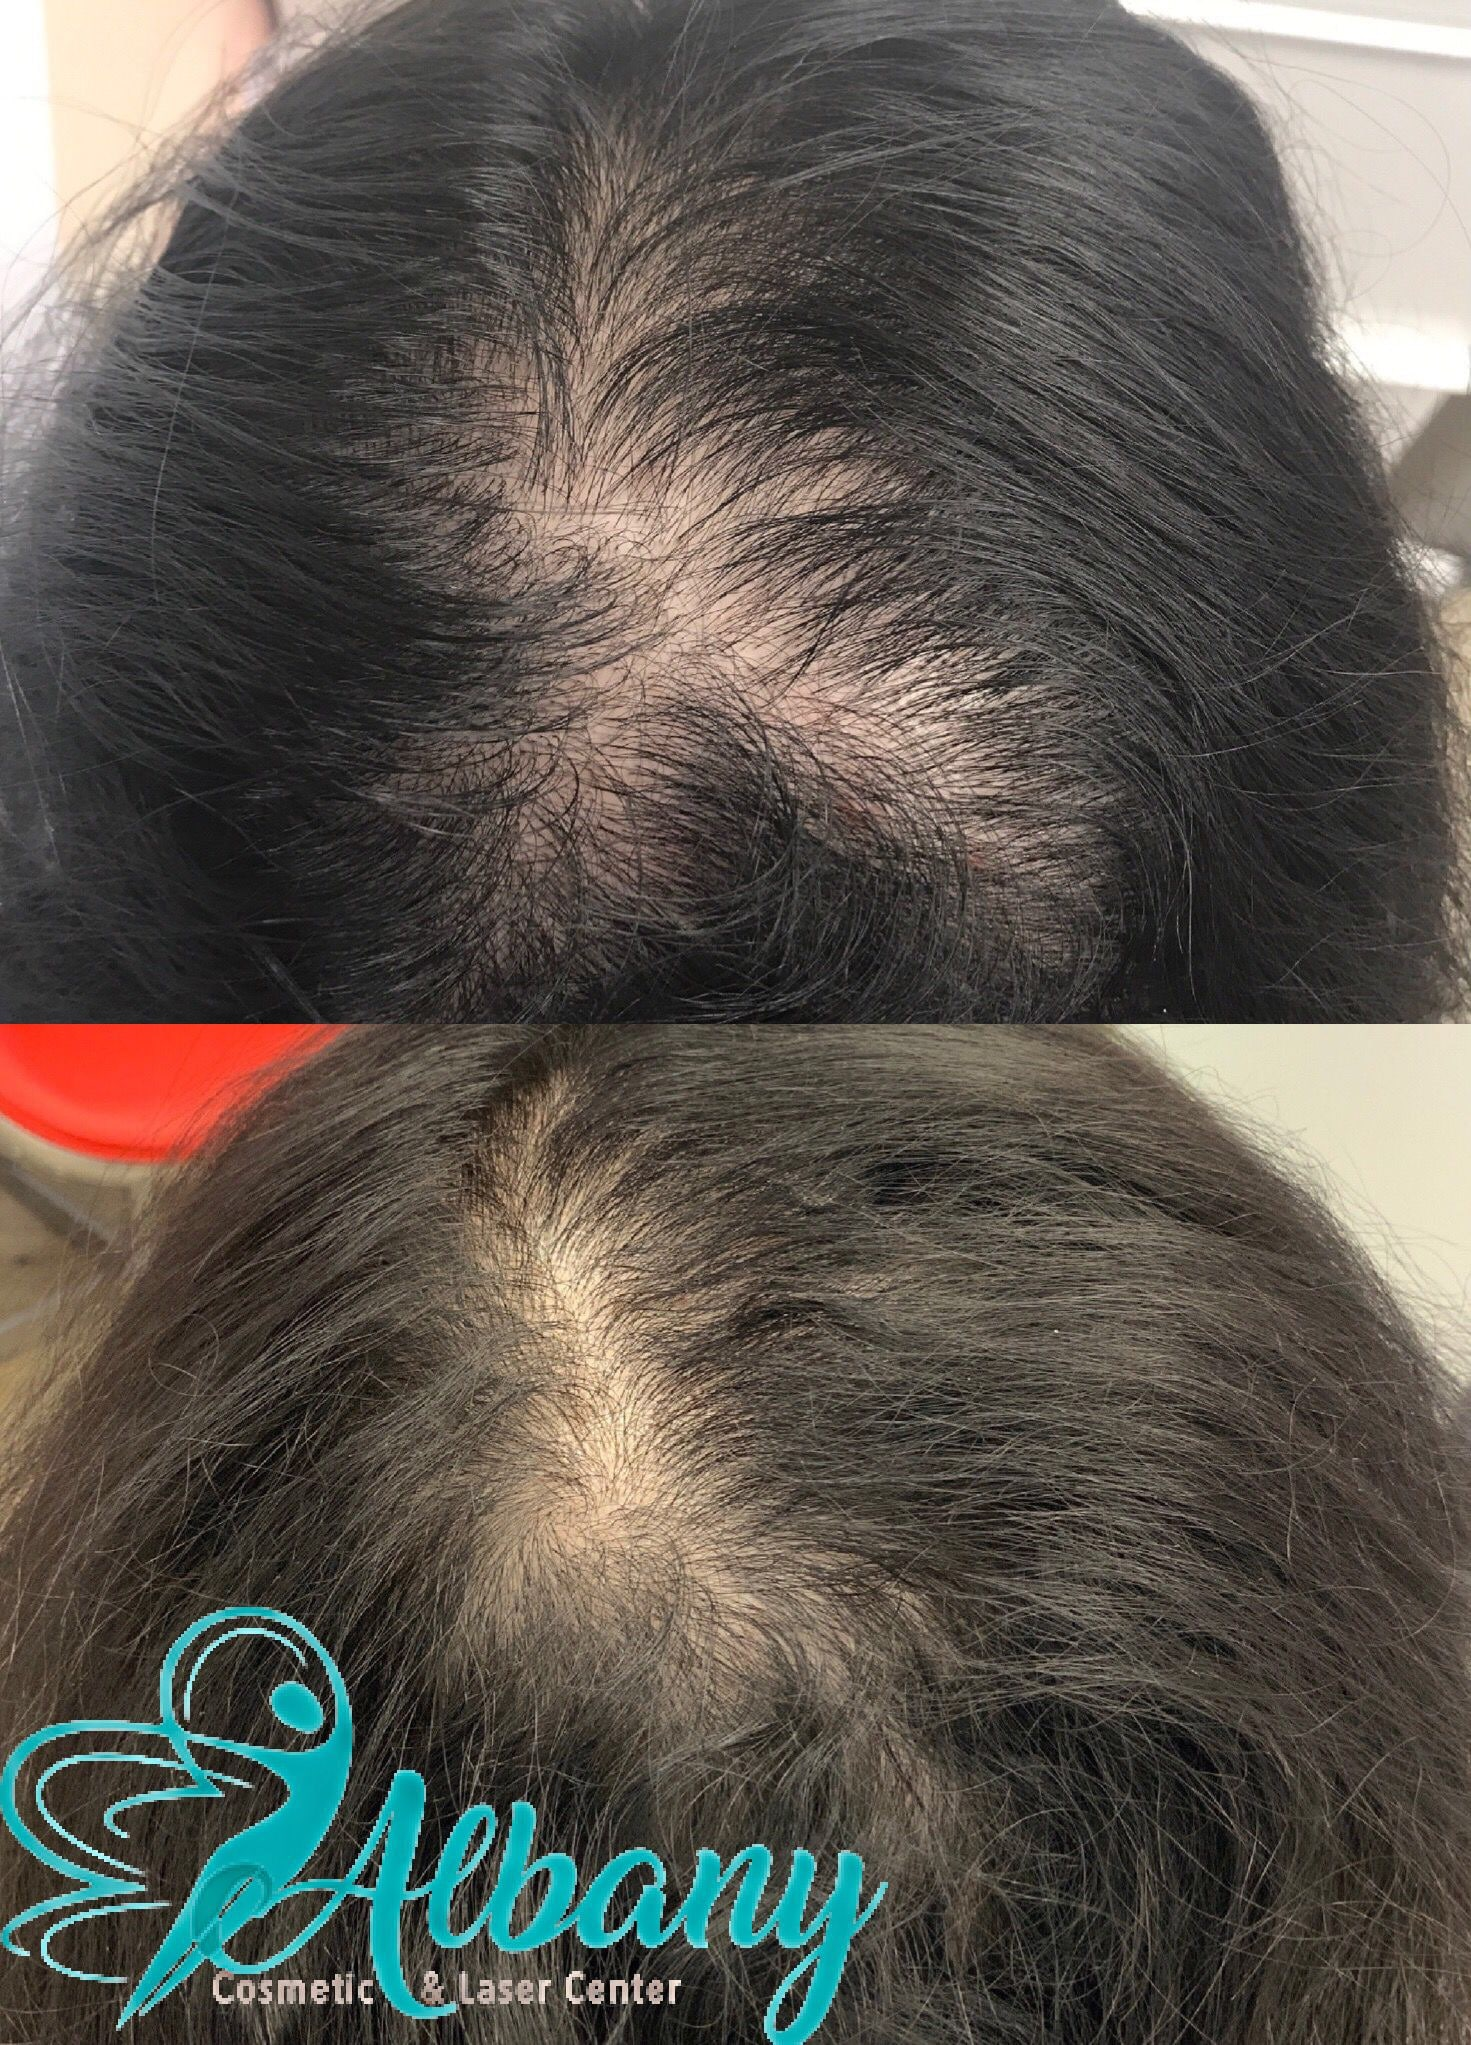 Hair loss treatment in Edmonton